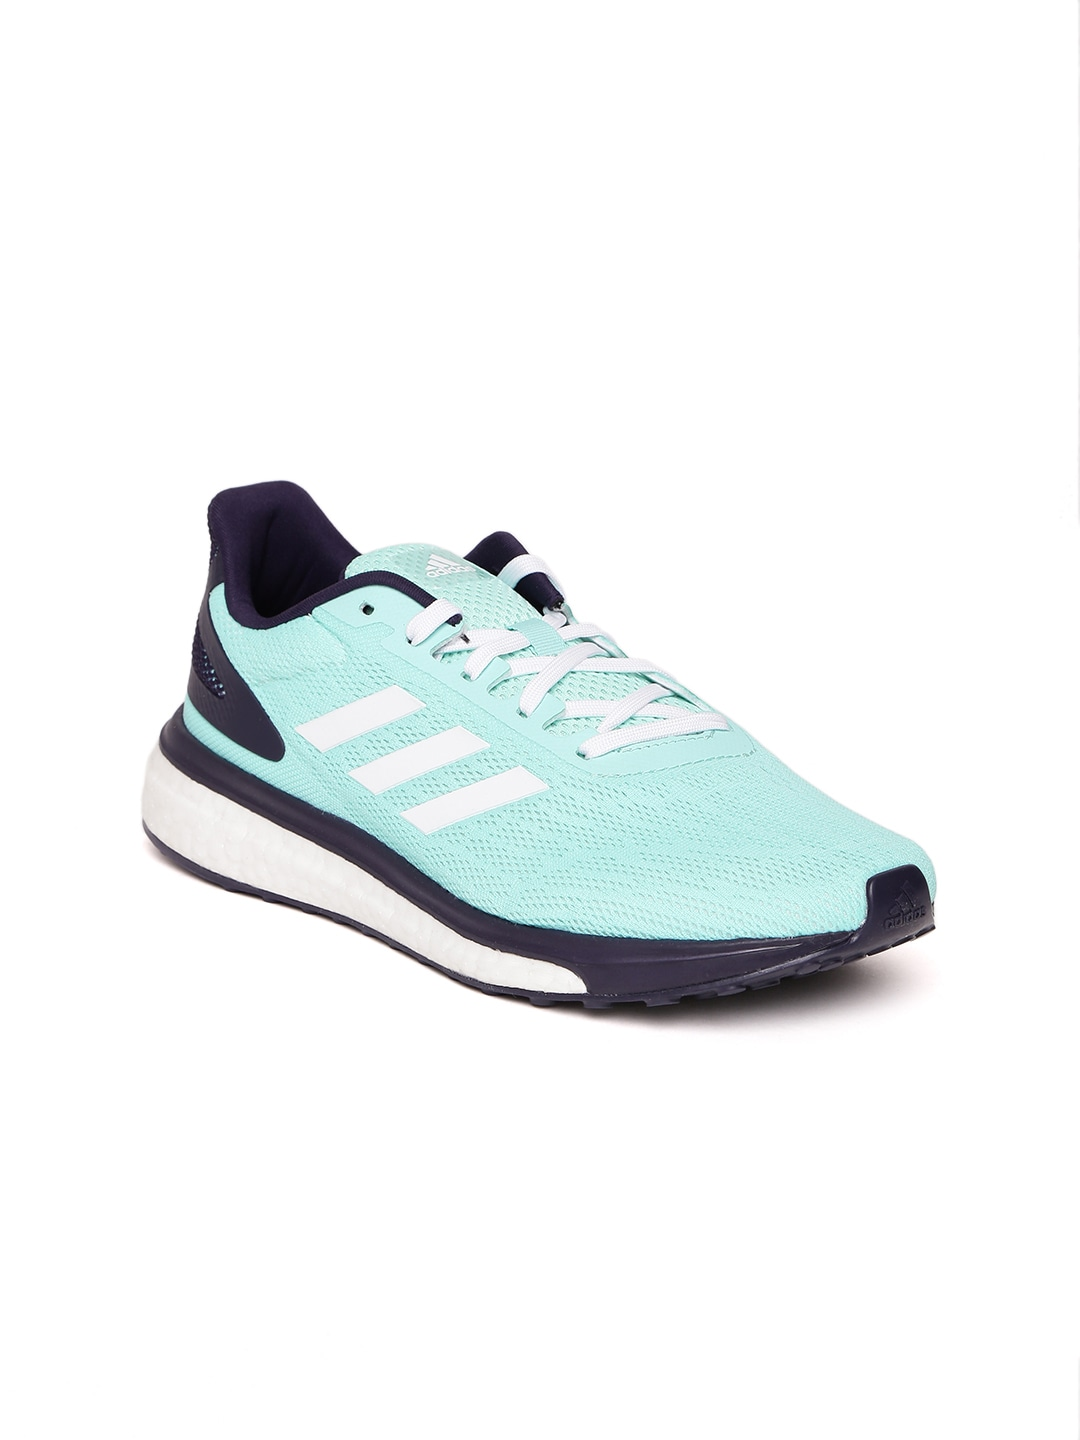 702a09844c0a adidas - Exclusive adidas Online Store in India at Myntra